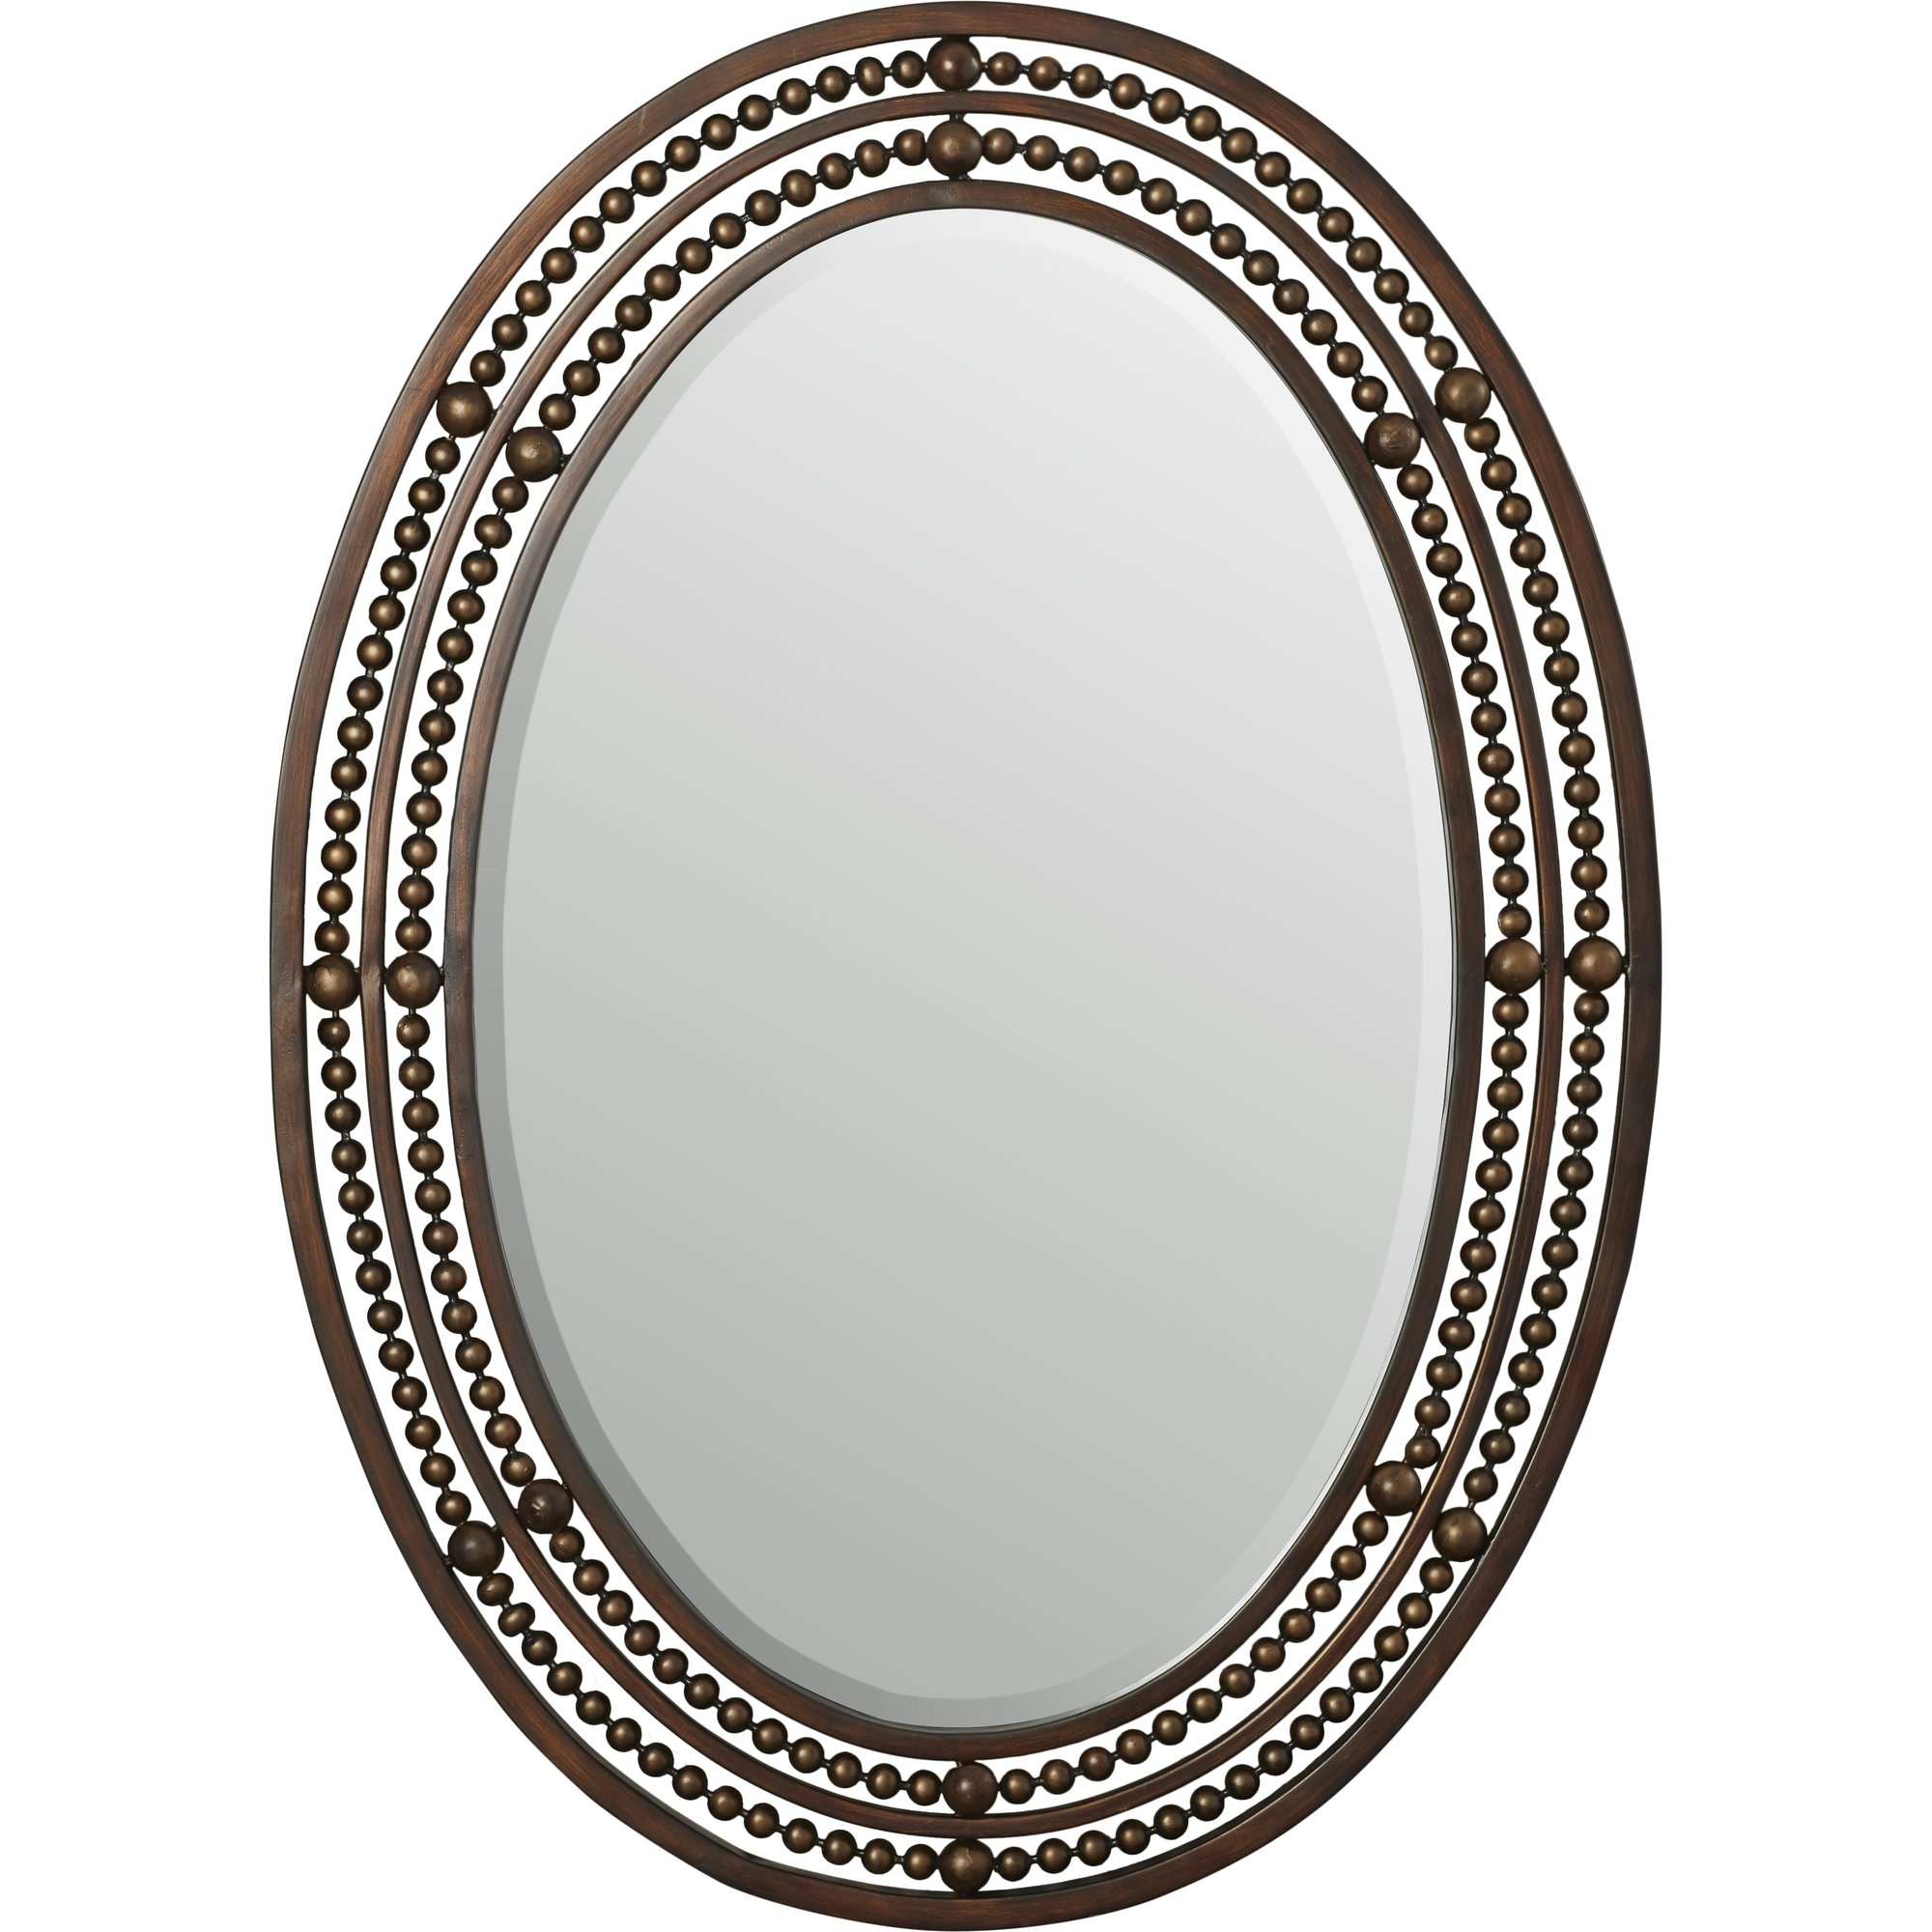 World Menagerie Oval Wall Mirror Reviews Wayfair Within Oval Wall Mirrors (Image 15 of 15)